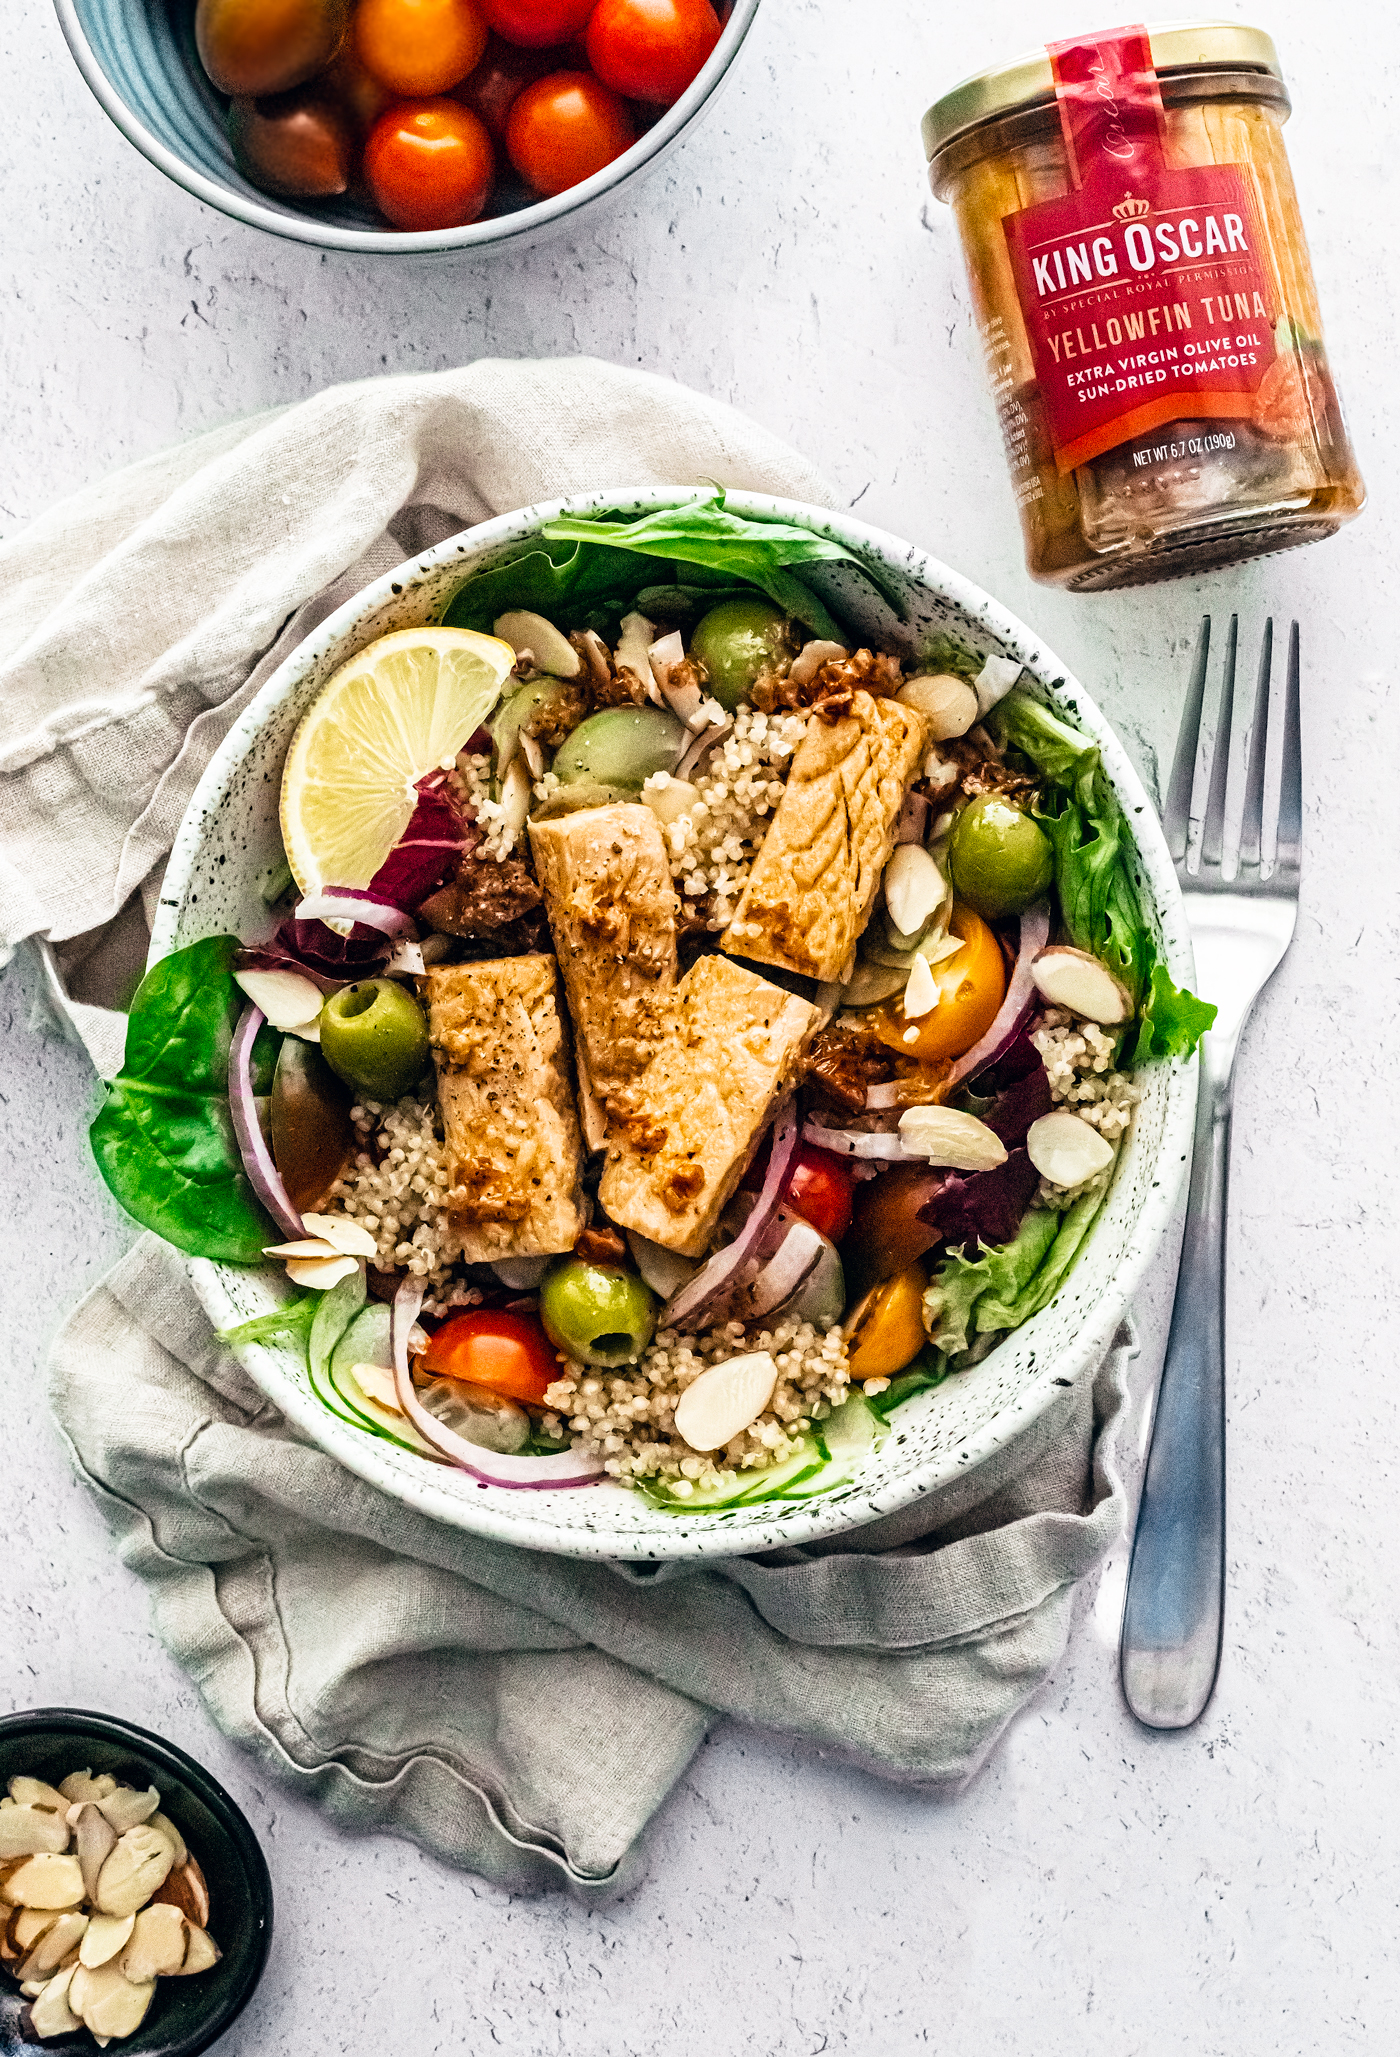 Big bowl full of mixed greens topped with quinoa, tomatoes, olives, cucumbers, almonds, and large chunks of tuna next to glass jar of King Oscar tuna.